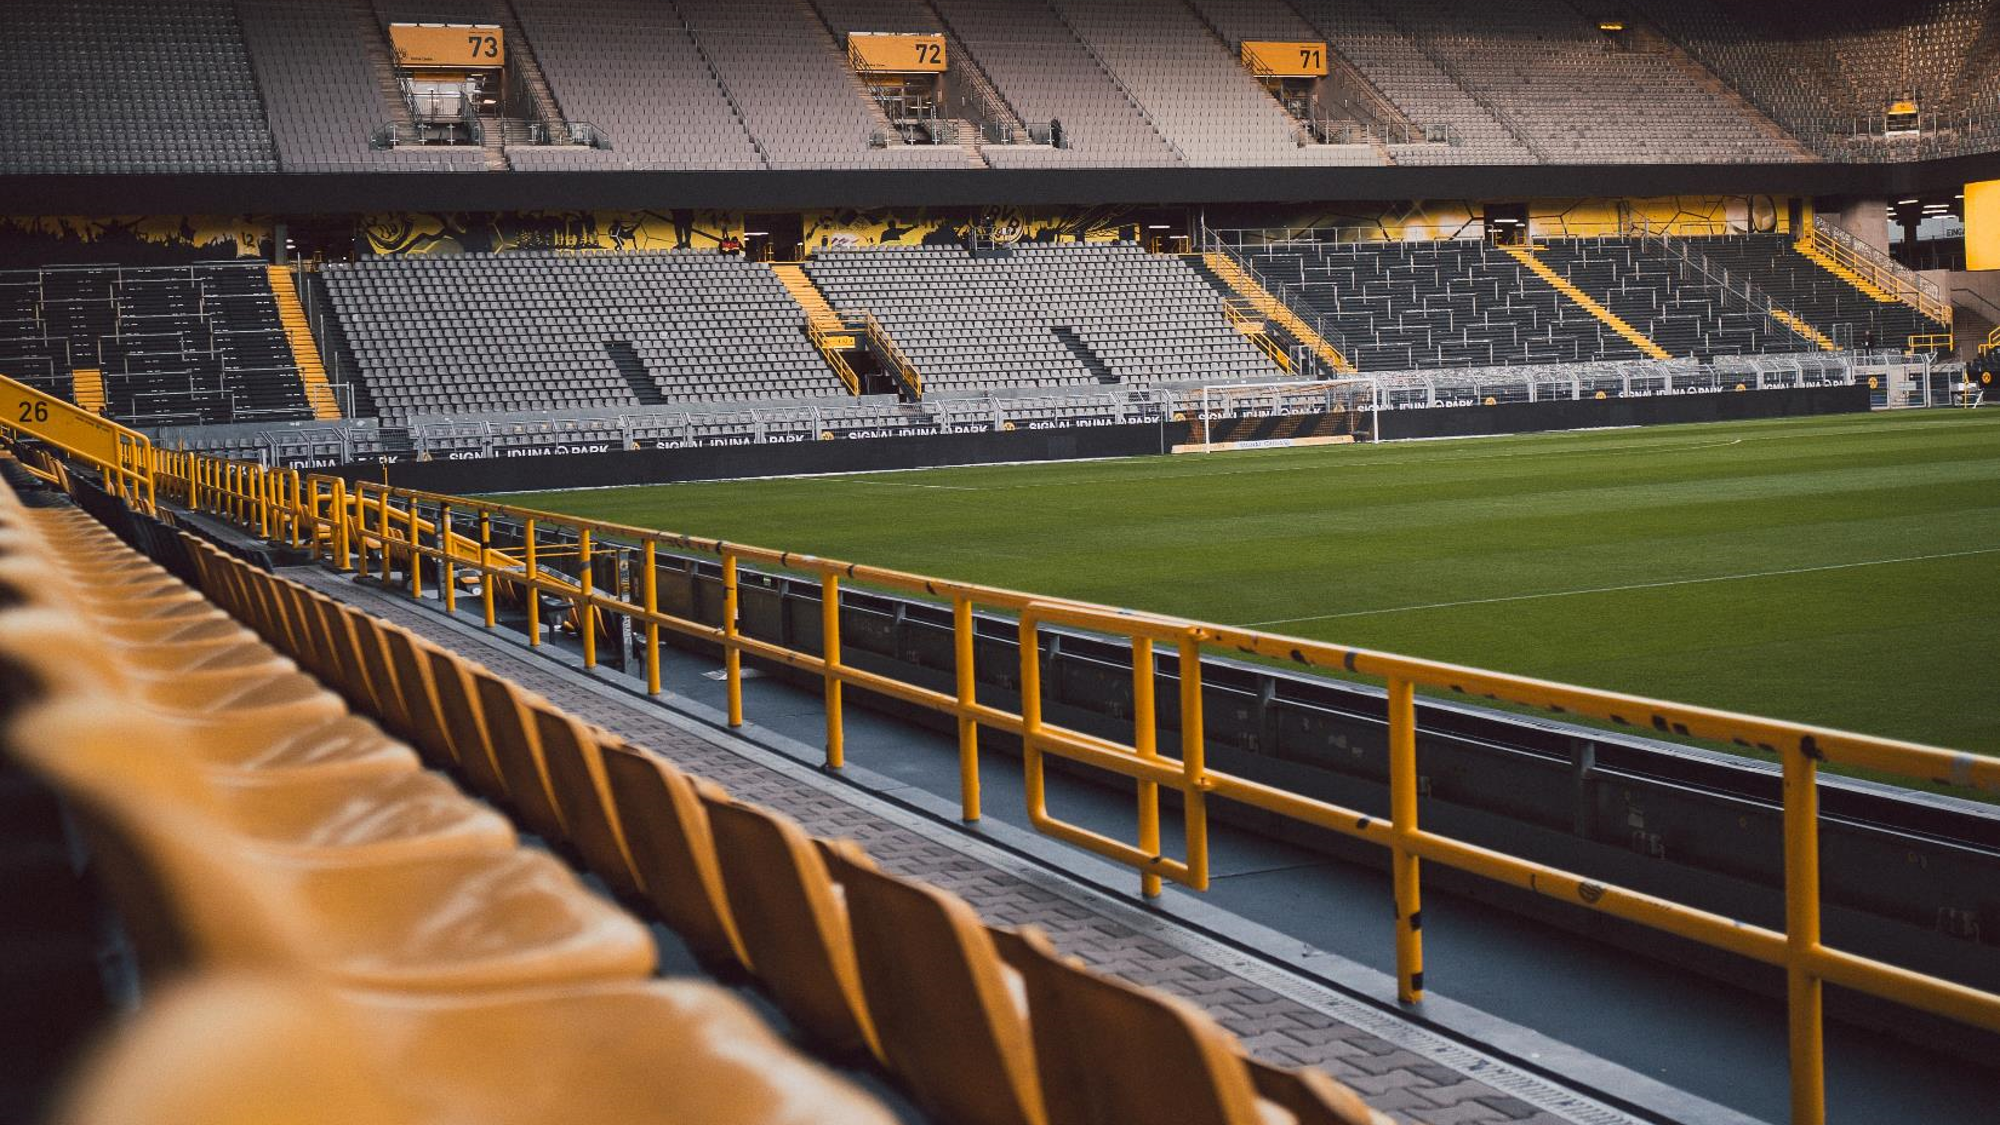 COVID-19 means the majority of stadia will remain empty for the foreseeable future